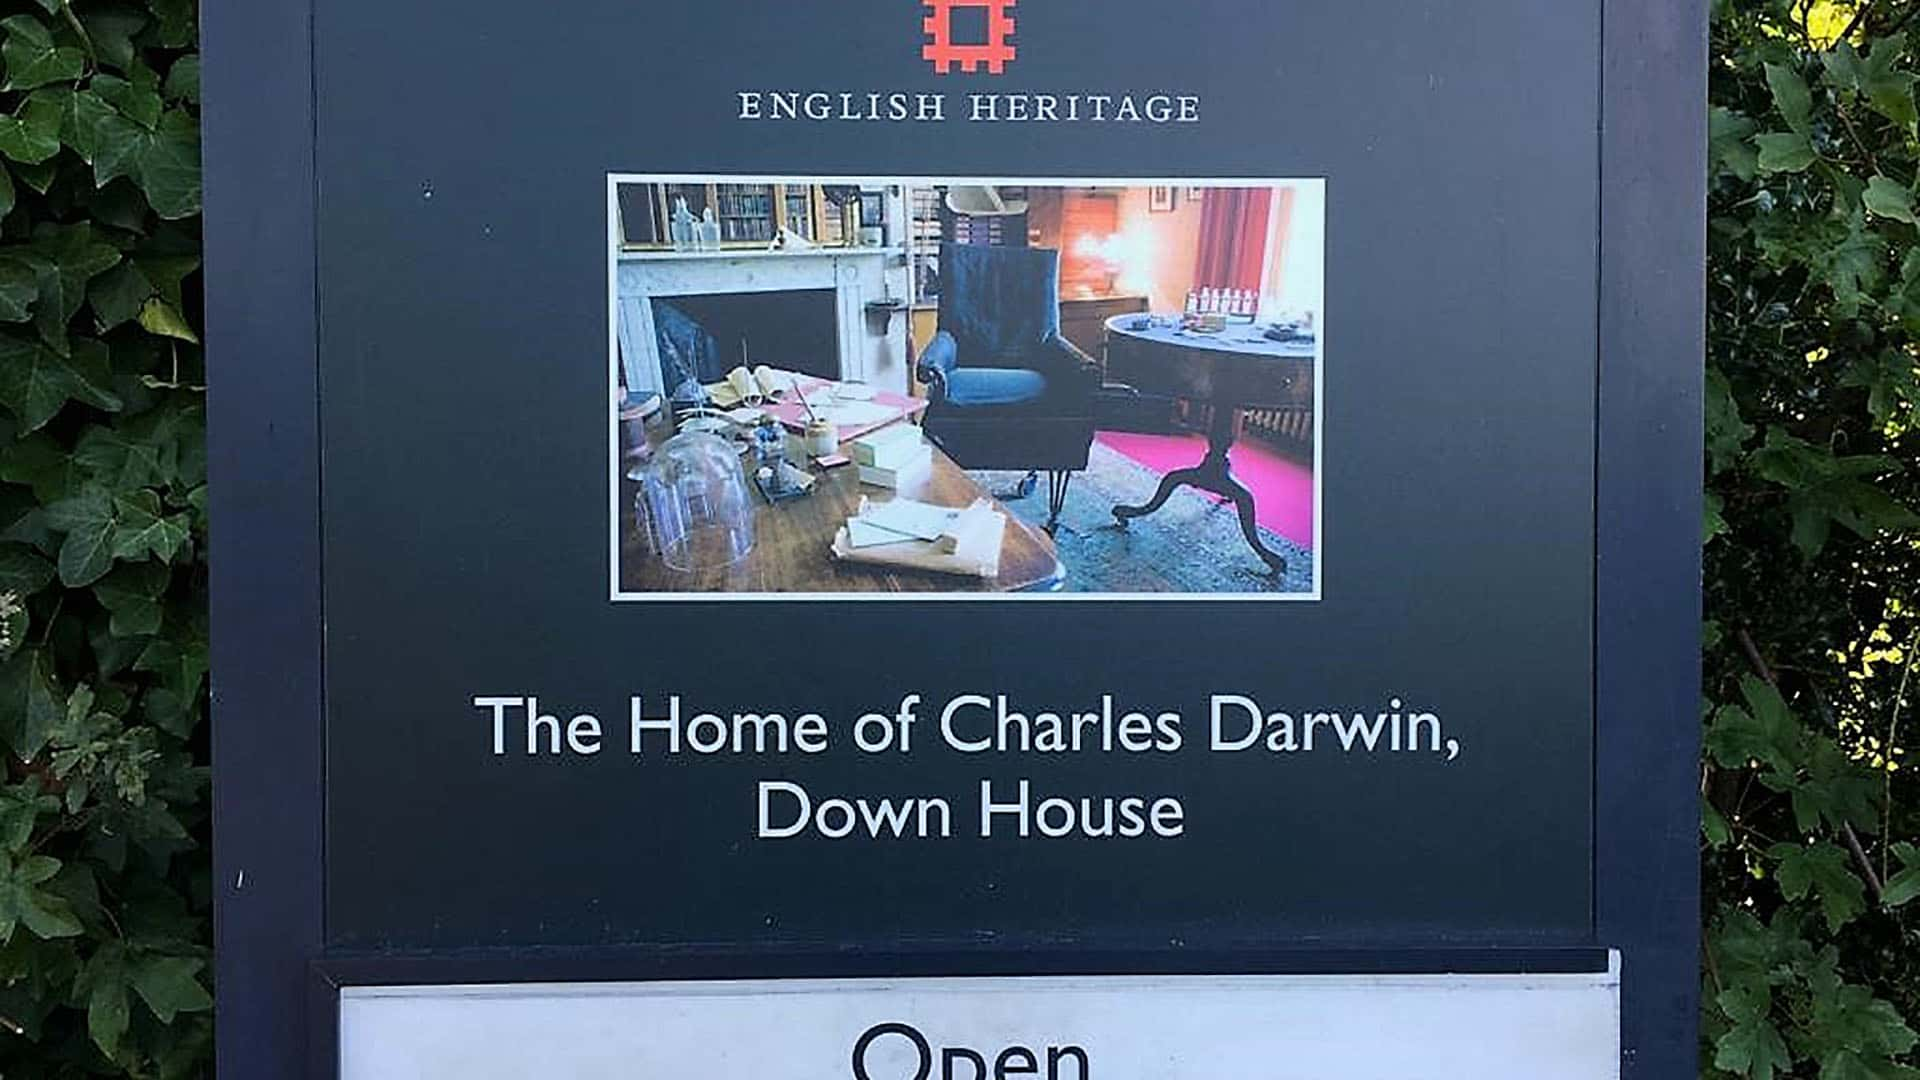 The Home of Charles Darwin, Down House